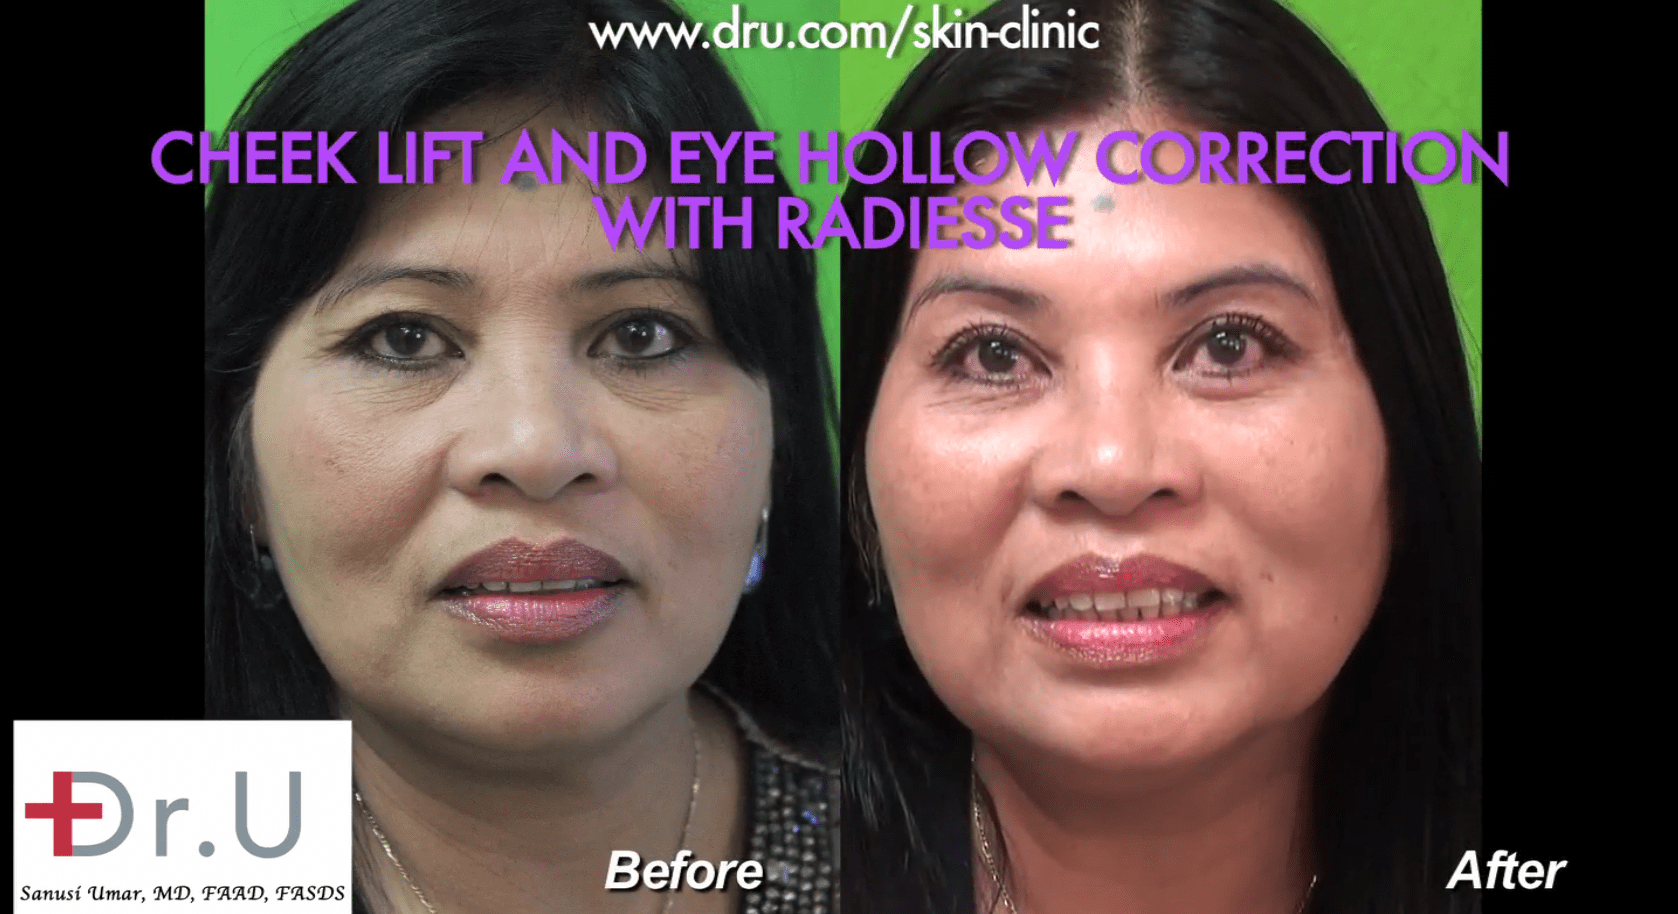 Before and after the patient's non surgical cheek lift and hollow eye treatment.*